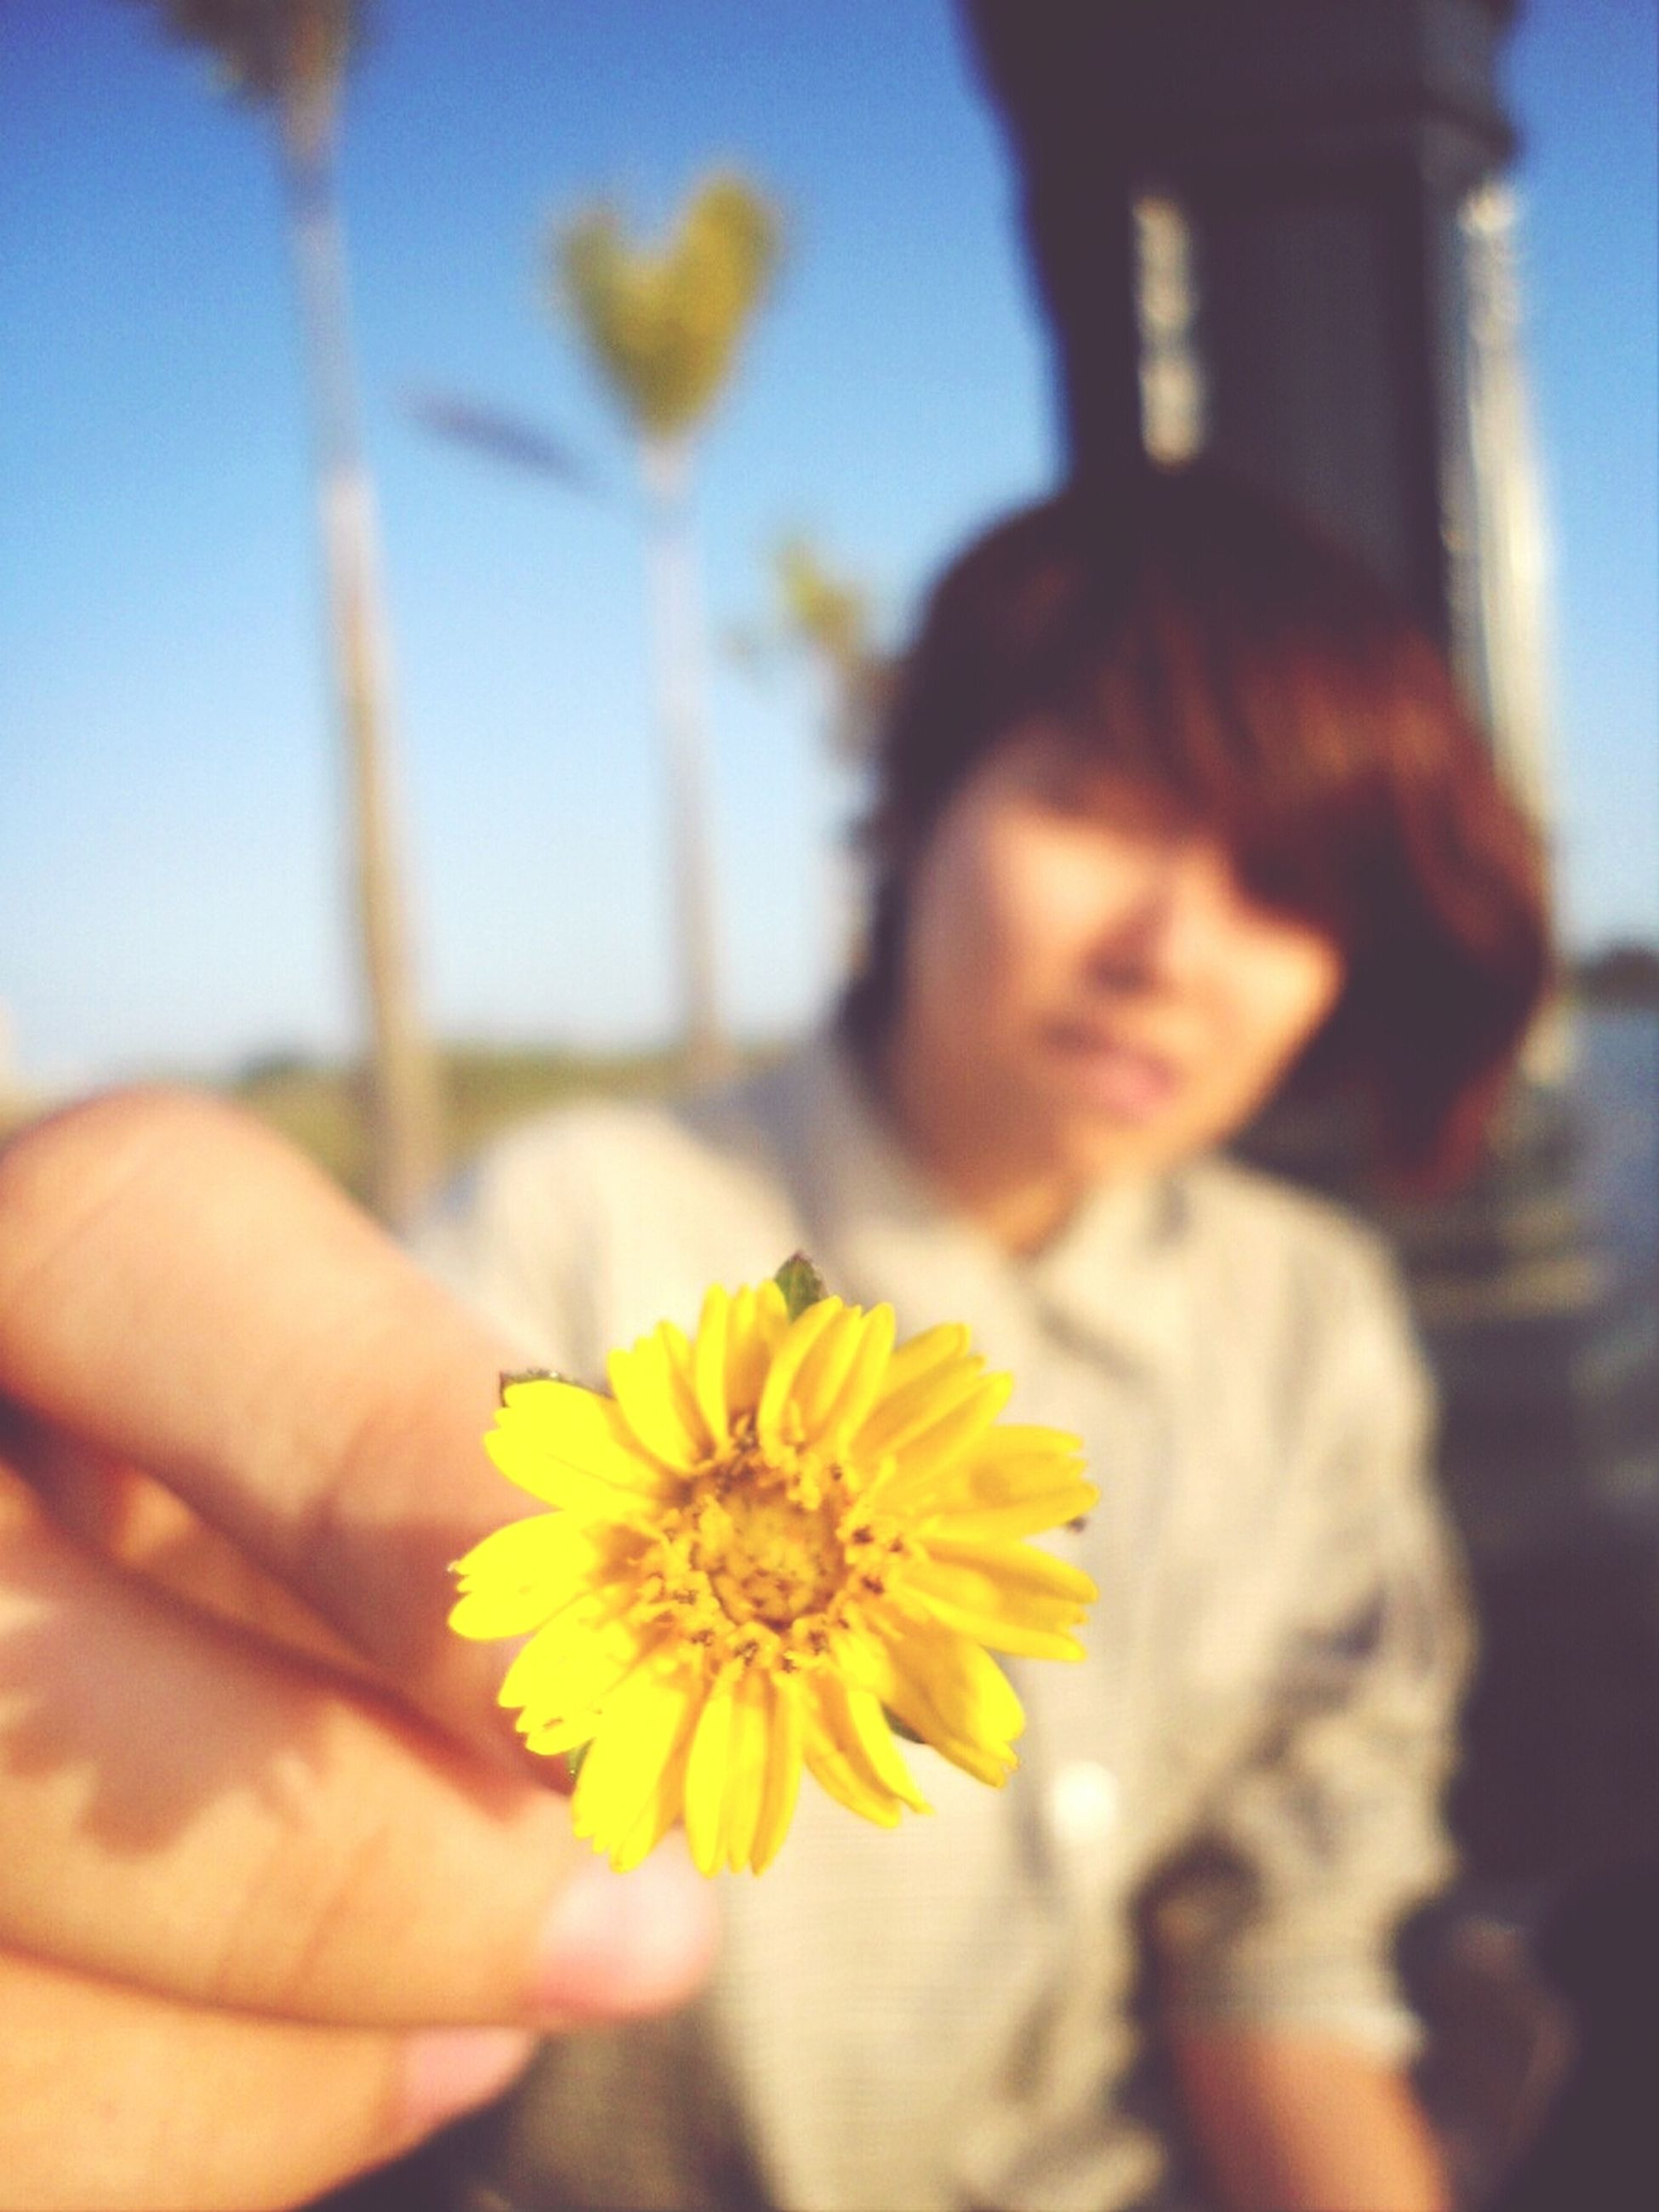 flower, focus on foreground, holding, lifestyles, leisure activity, fragility, yellow, person, headshot, petal, freshness, flower head, casual clothing, close-up, waist up, childhood, elementary age